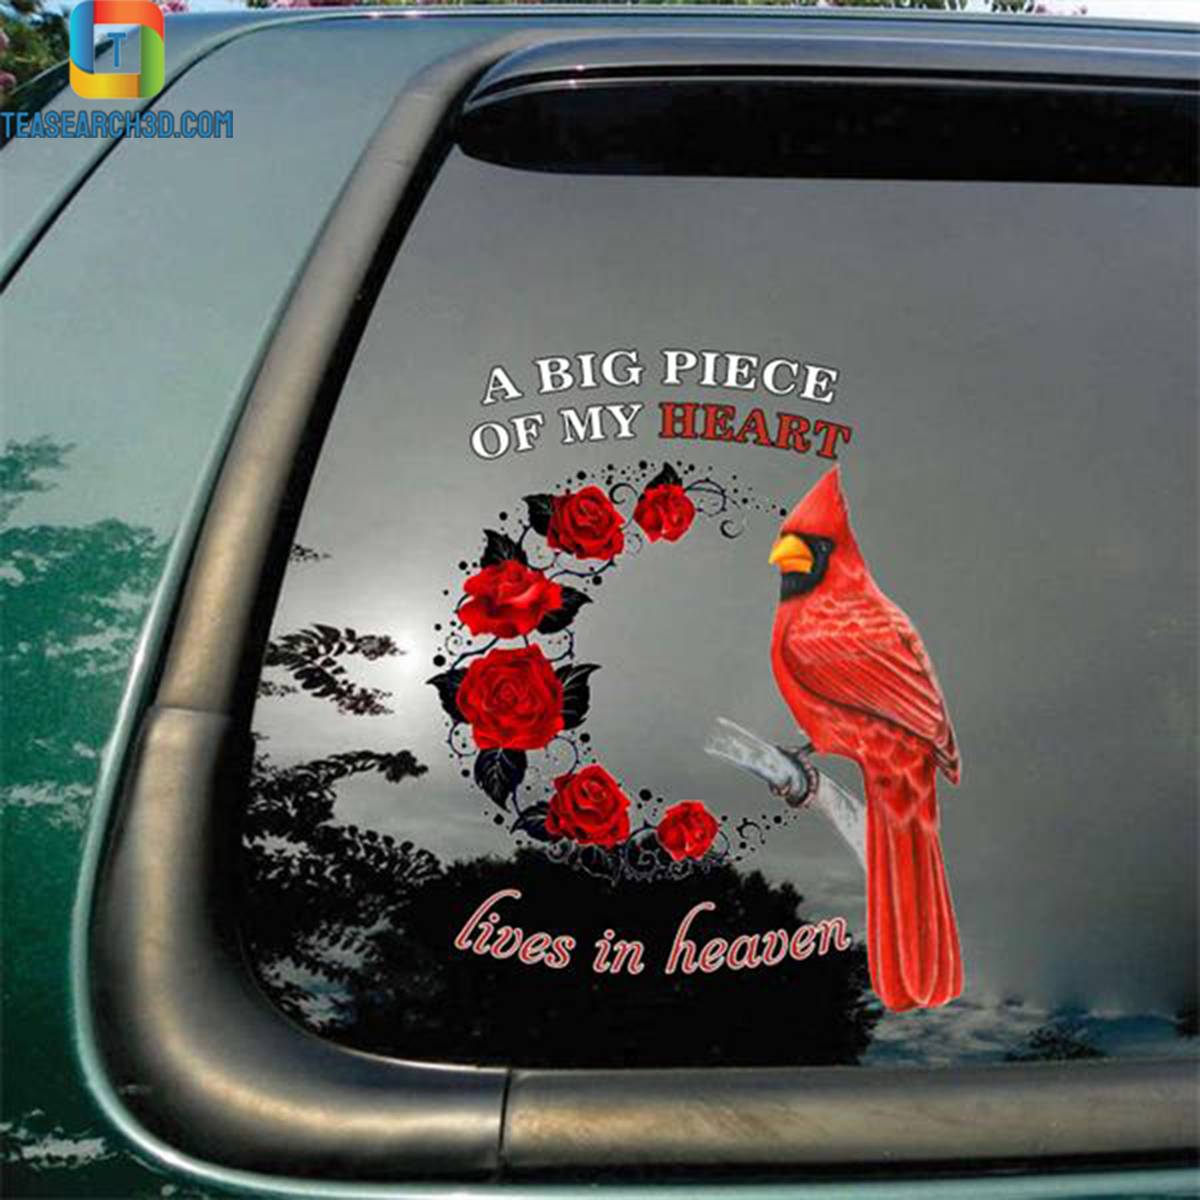 Cardinal a big piece of my heart lives in heaven car decal sticker 2